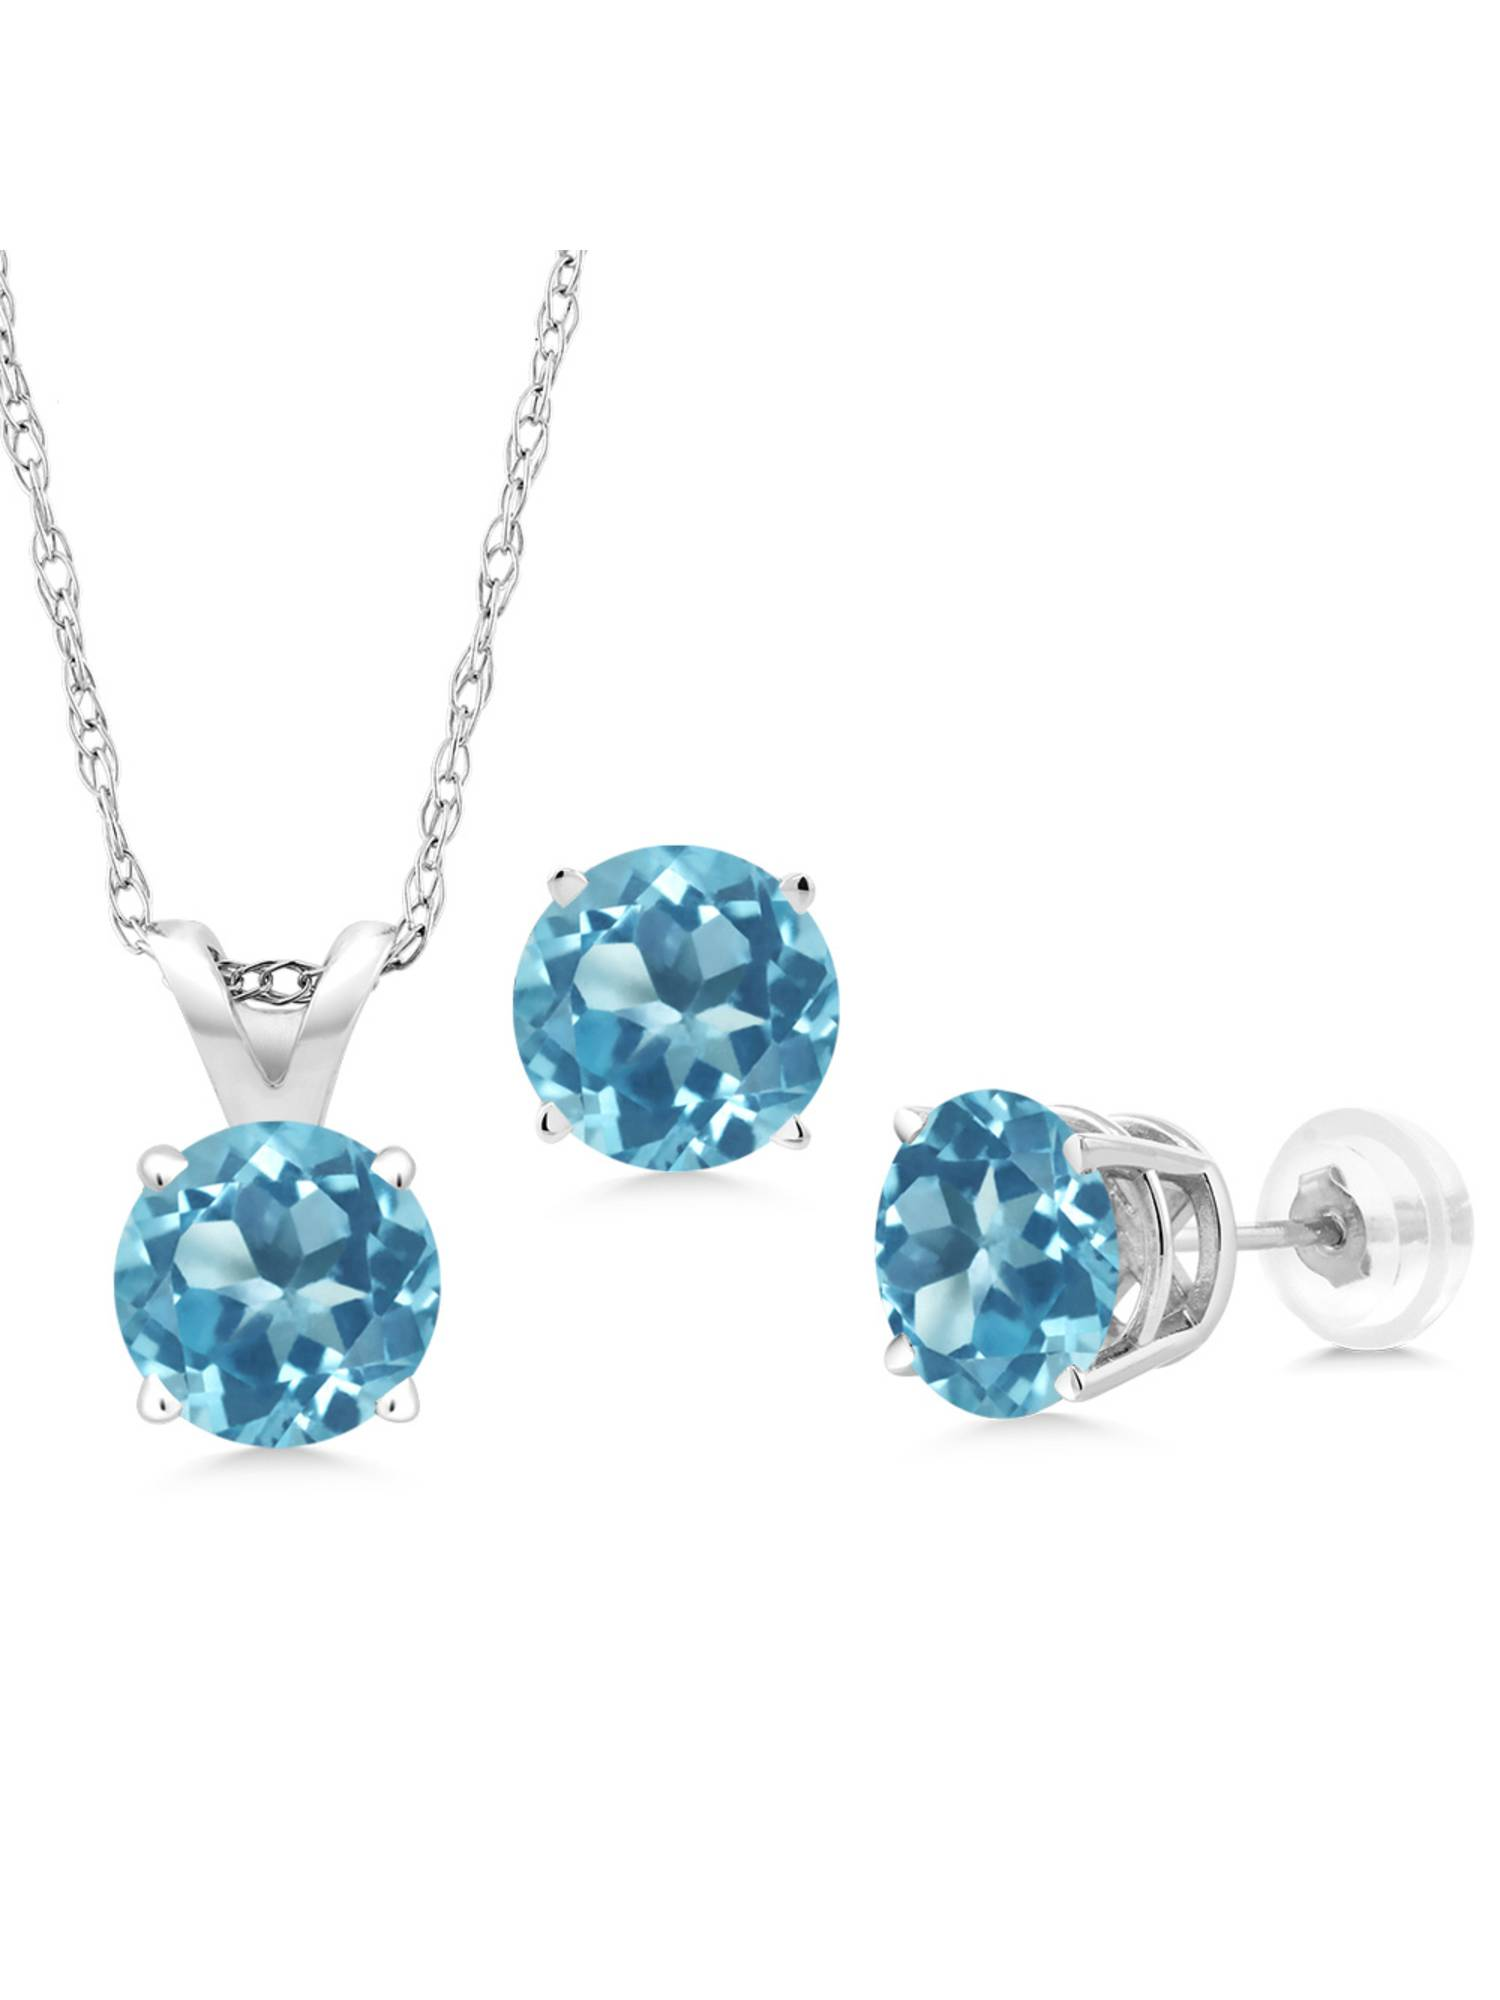 2.70 Ct Round Swiss Blue Topaz 14K White Gold Pendant Earrings Set With Chain by